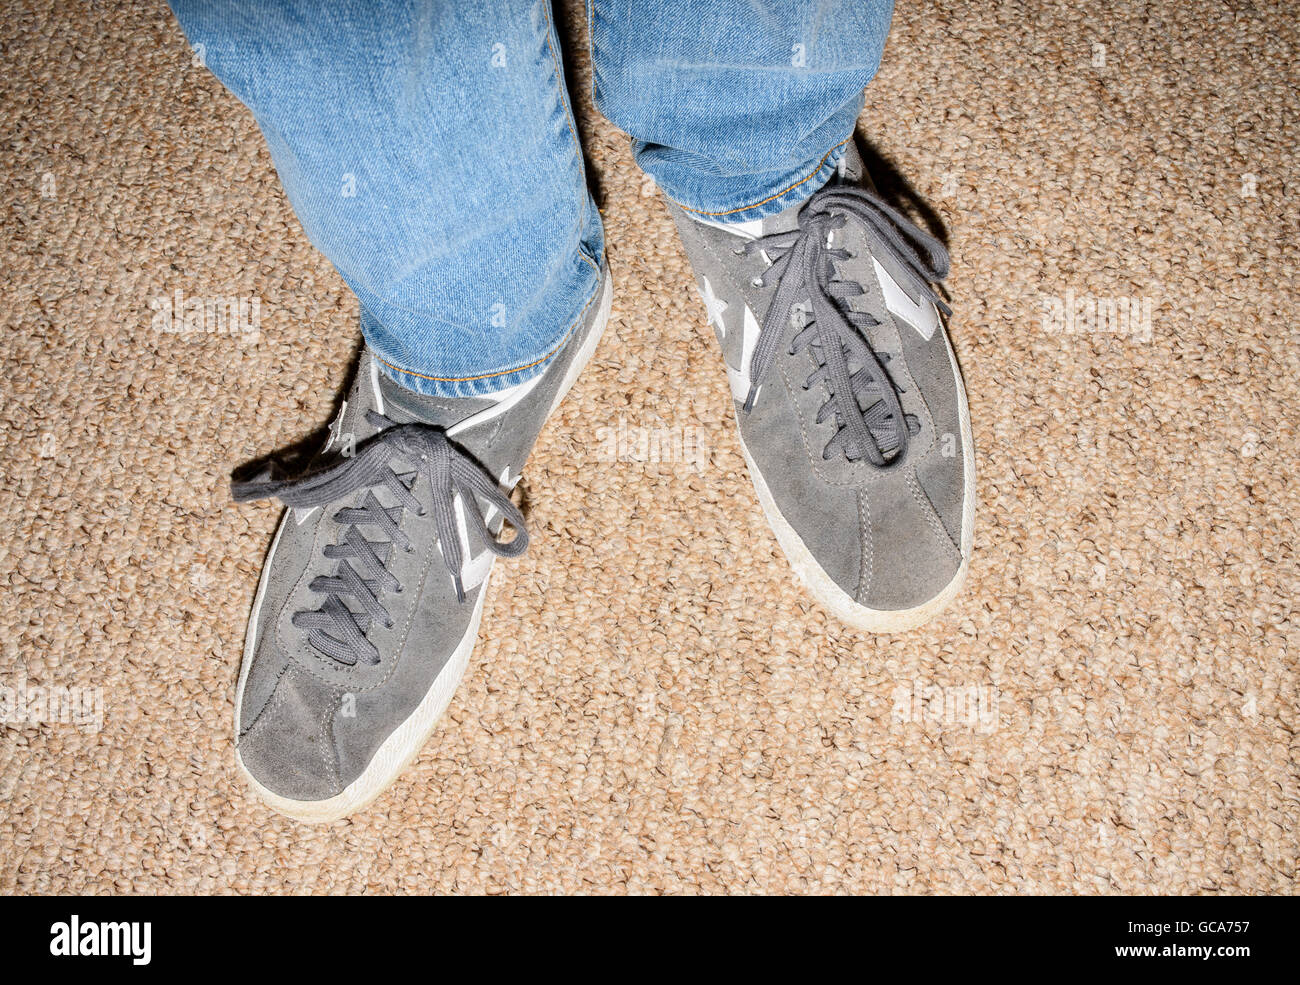 b953e6c3dcb Close up of lower legs and feet of person wearing blue denim jeans and grey  Converse